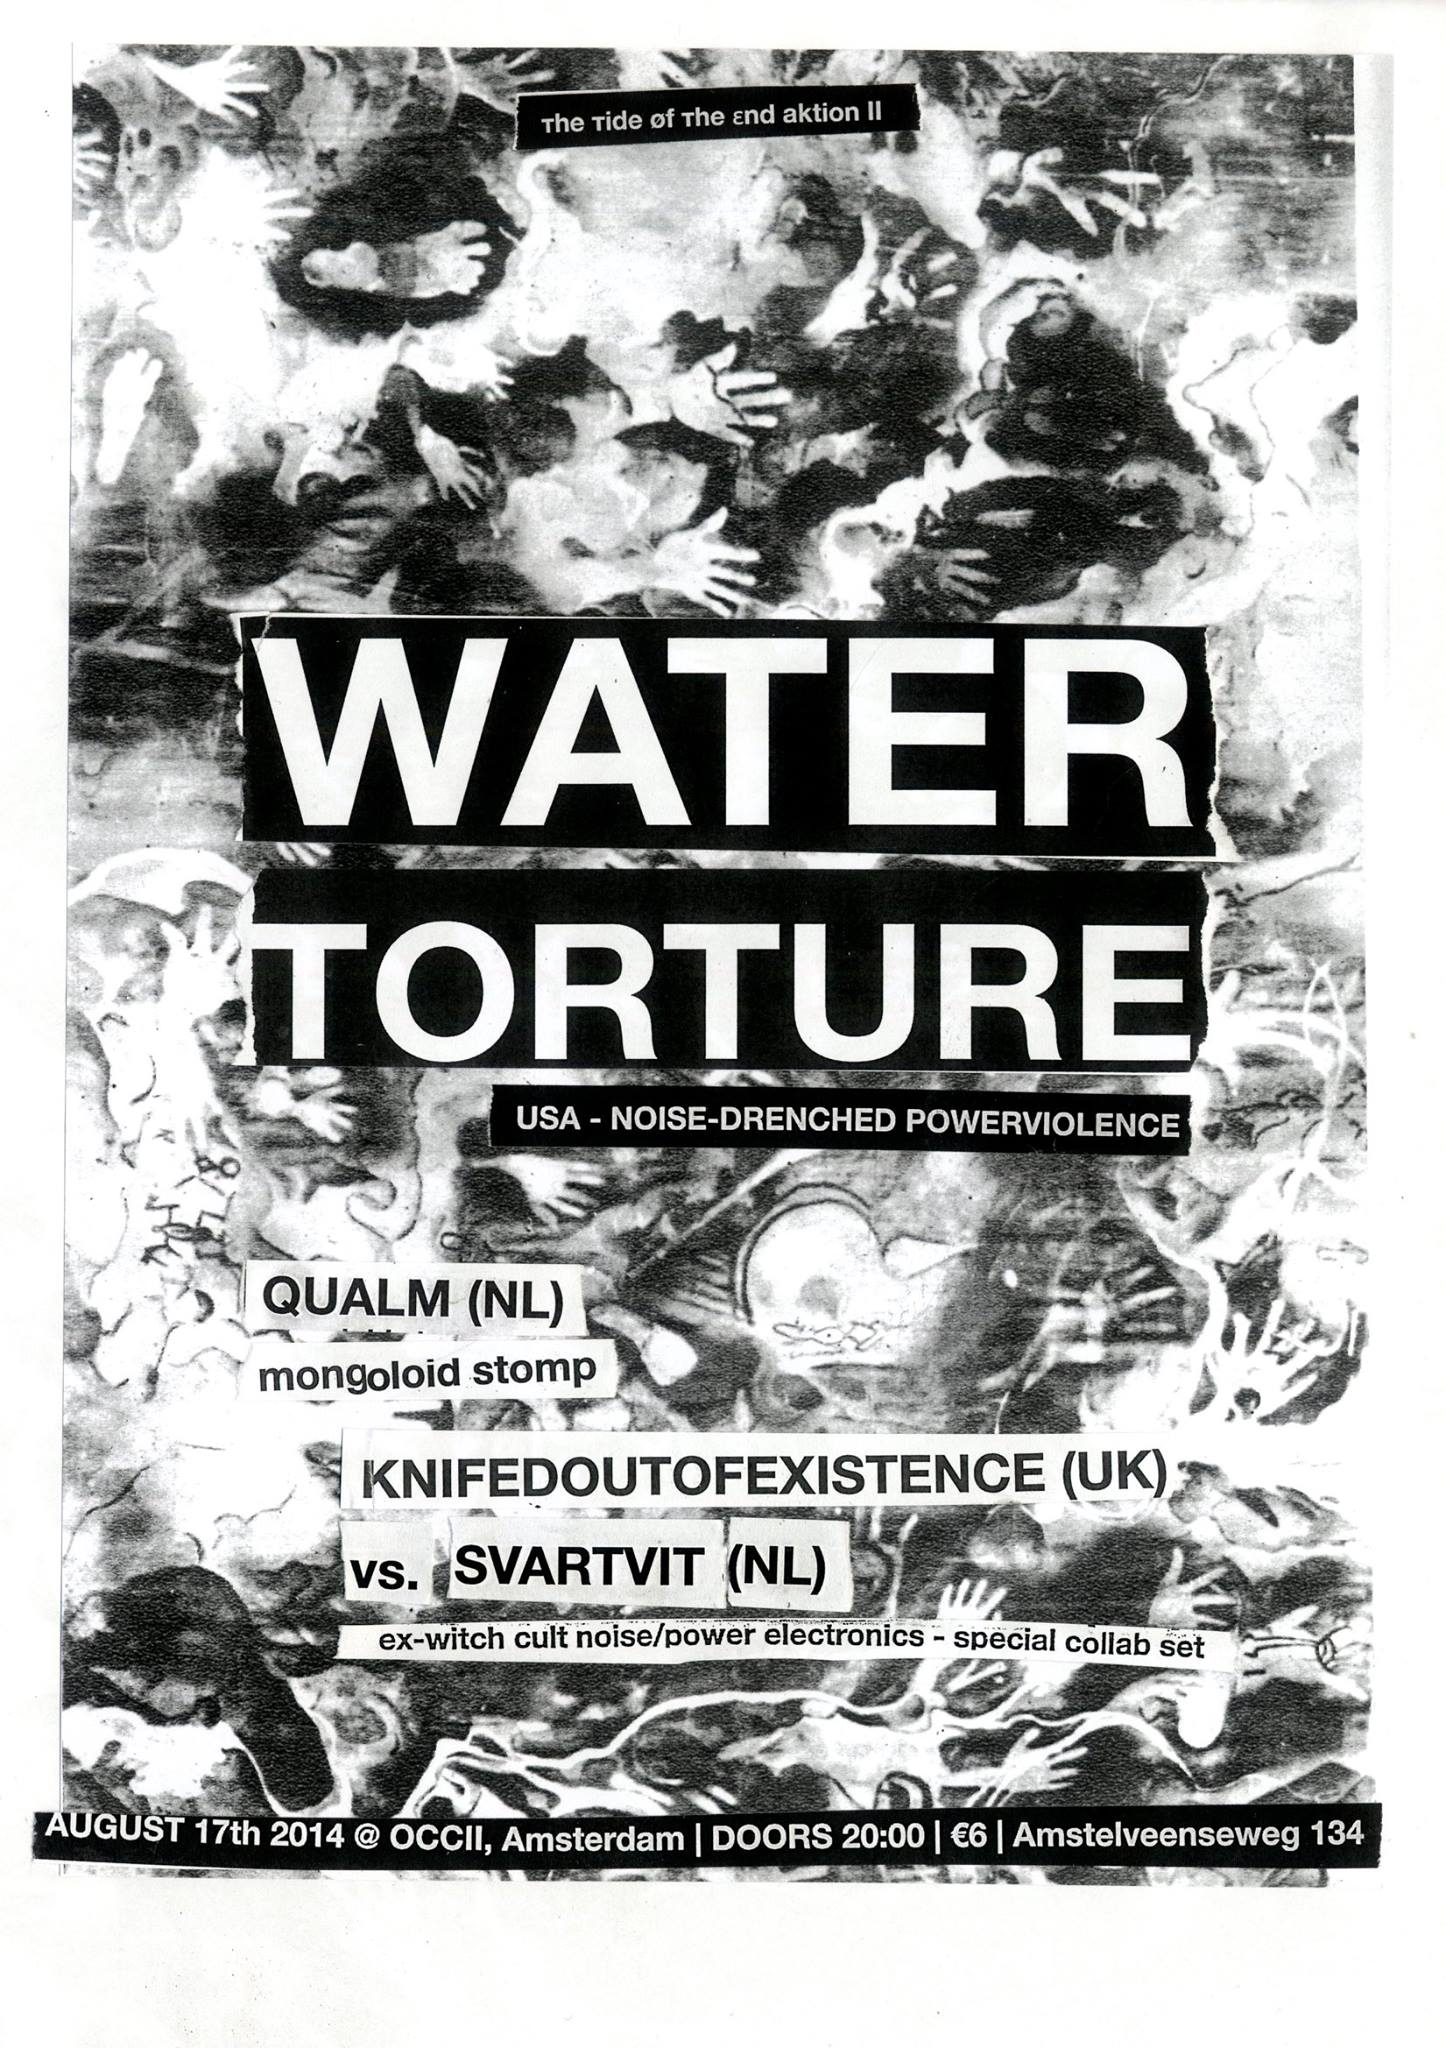 тhe тide øf тhe εnd presents: [ттøтε] AKTION II -w/ WATER TORTURE (us) + QUALM + KNIFEDOUTOFEXISTENCE vs. SVARTVIT